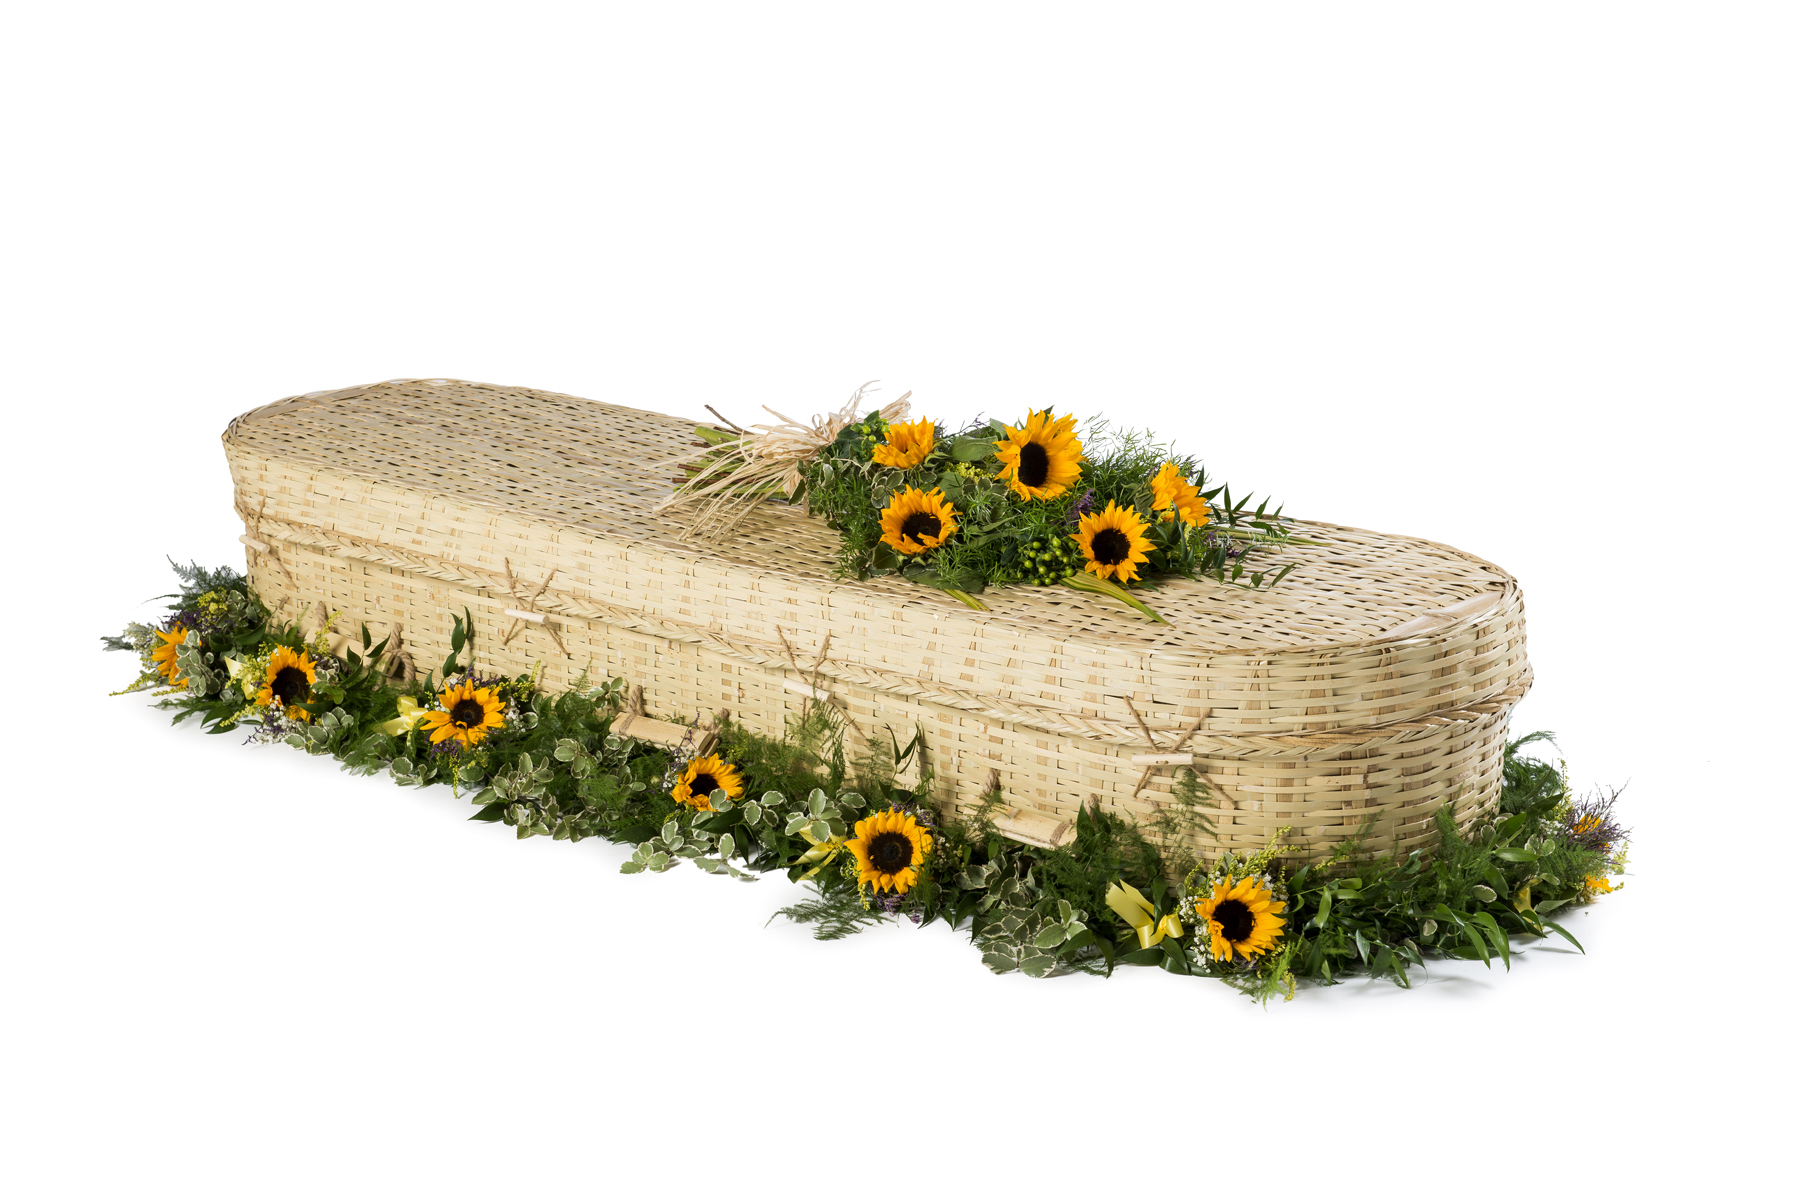 Bamboo Casket with garland